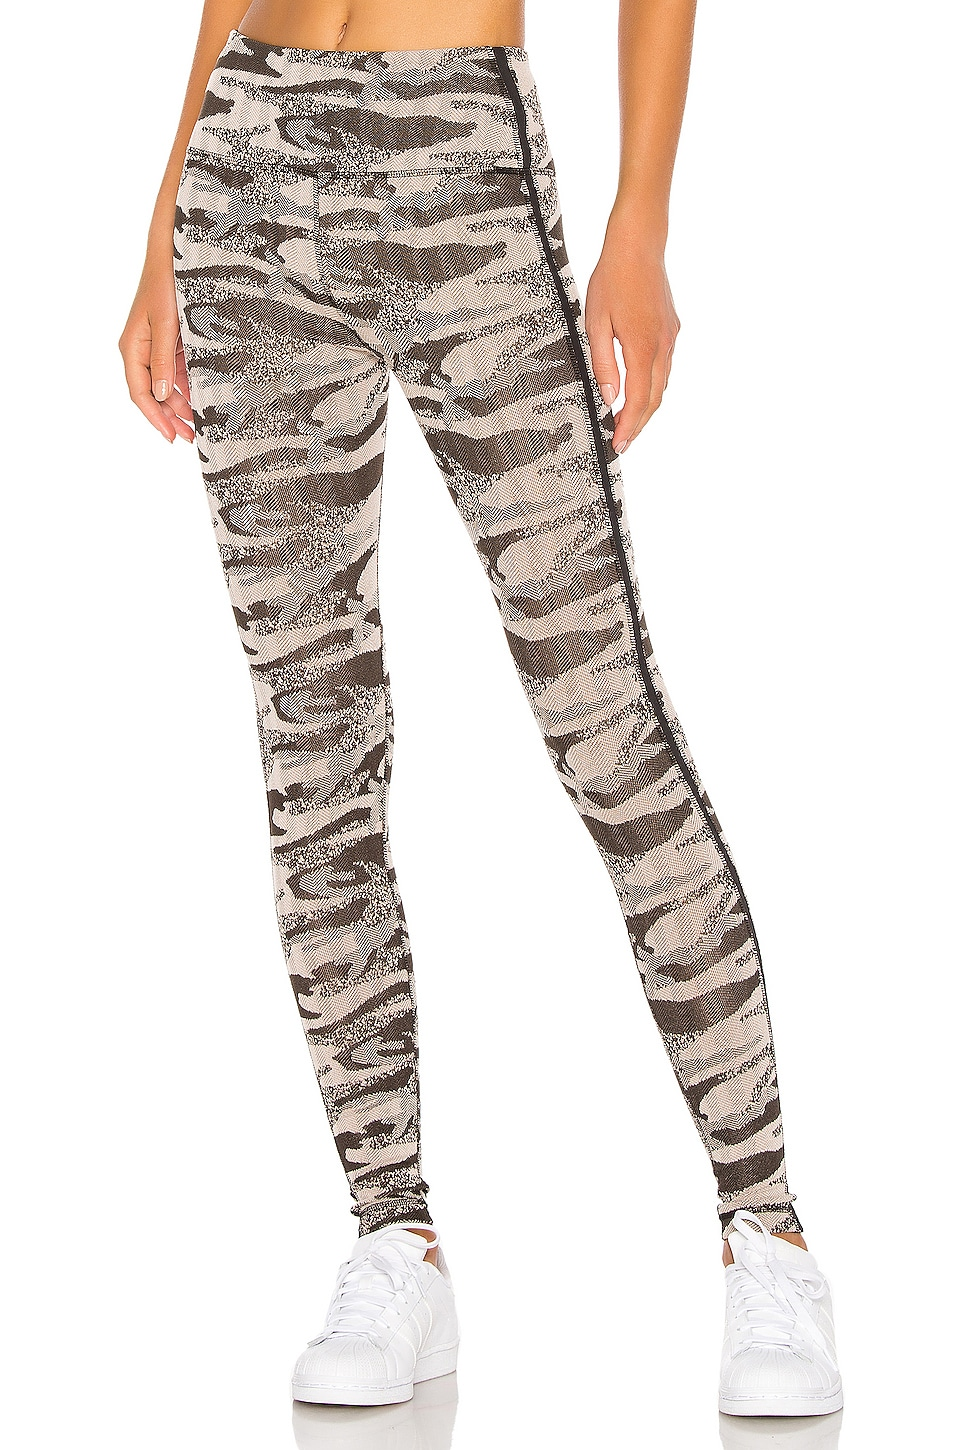 lukka lux Camo Legging in Court Camo